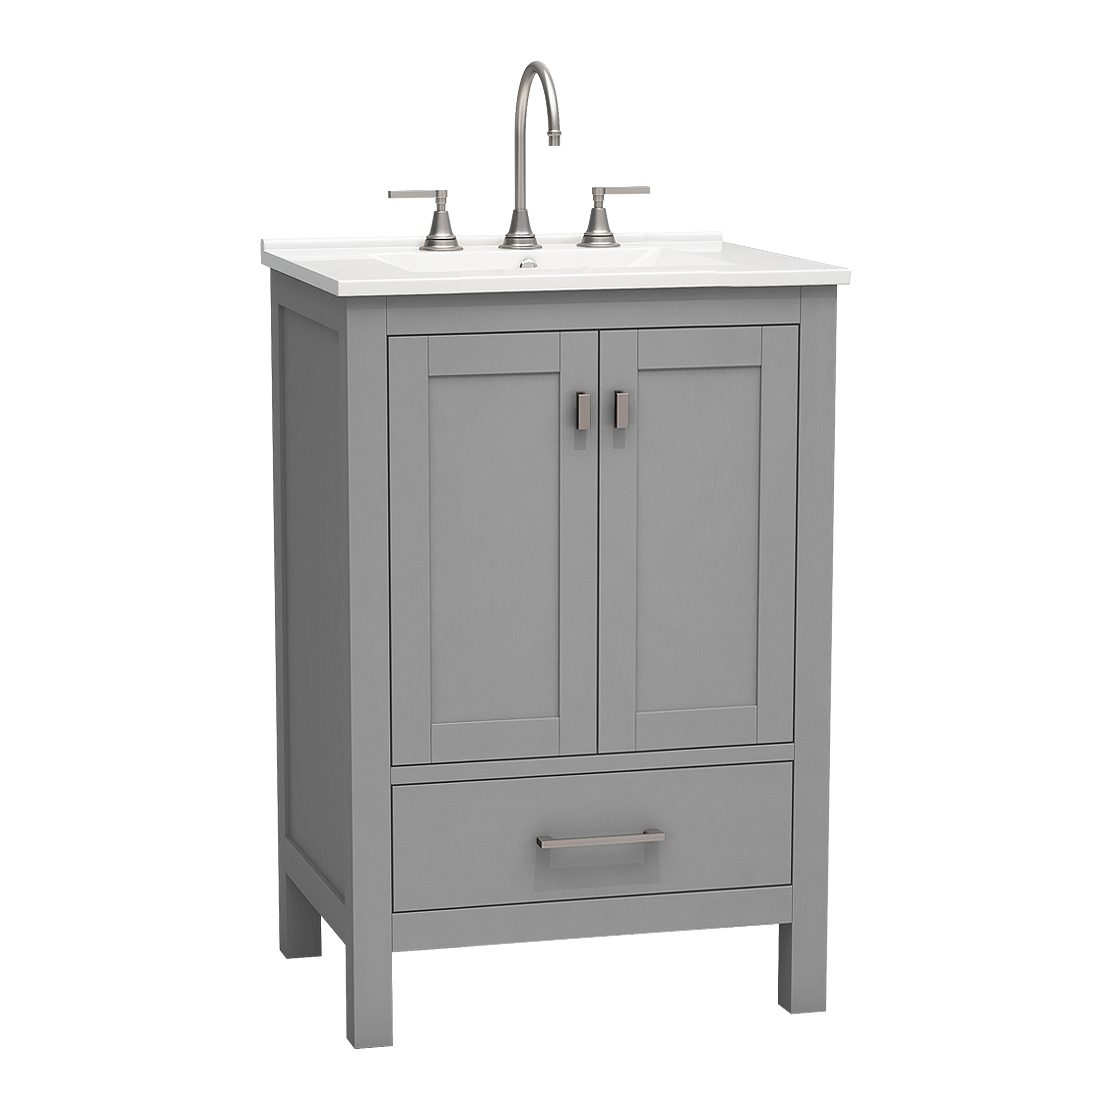 Torino 24inch vanity bottom drawer grey front view